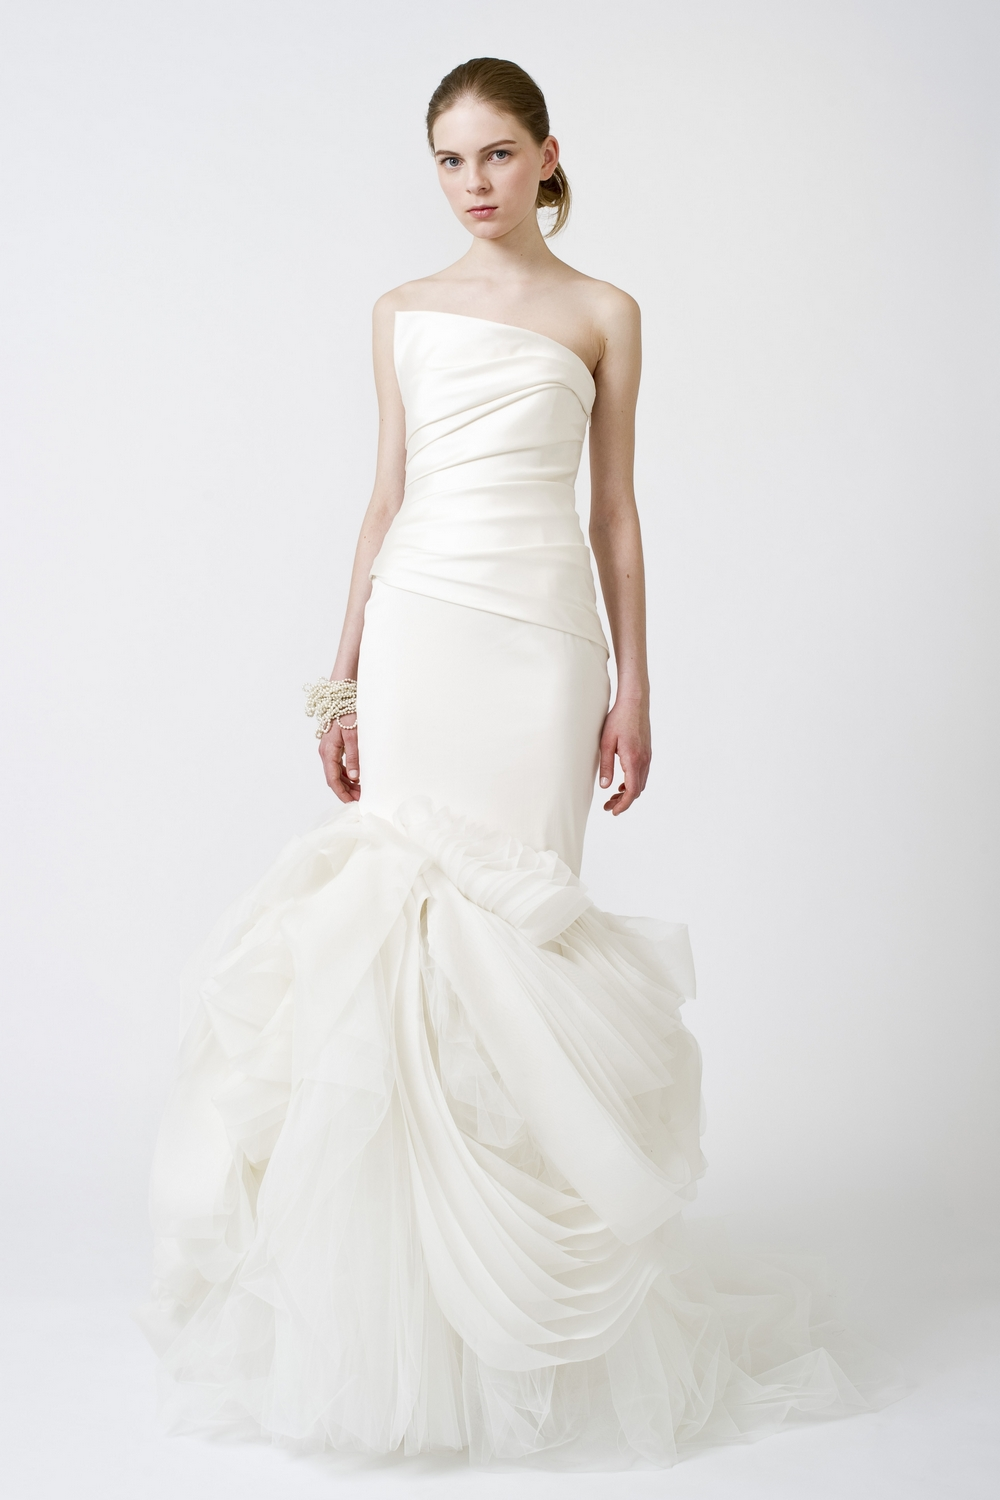 5-spring-2011-vera-wang-wedding-dresses-white-one-shoulder.original